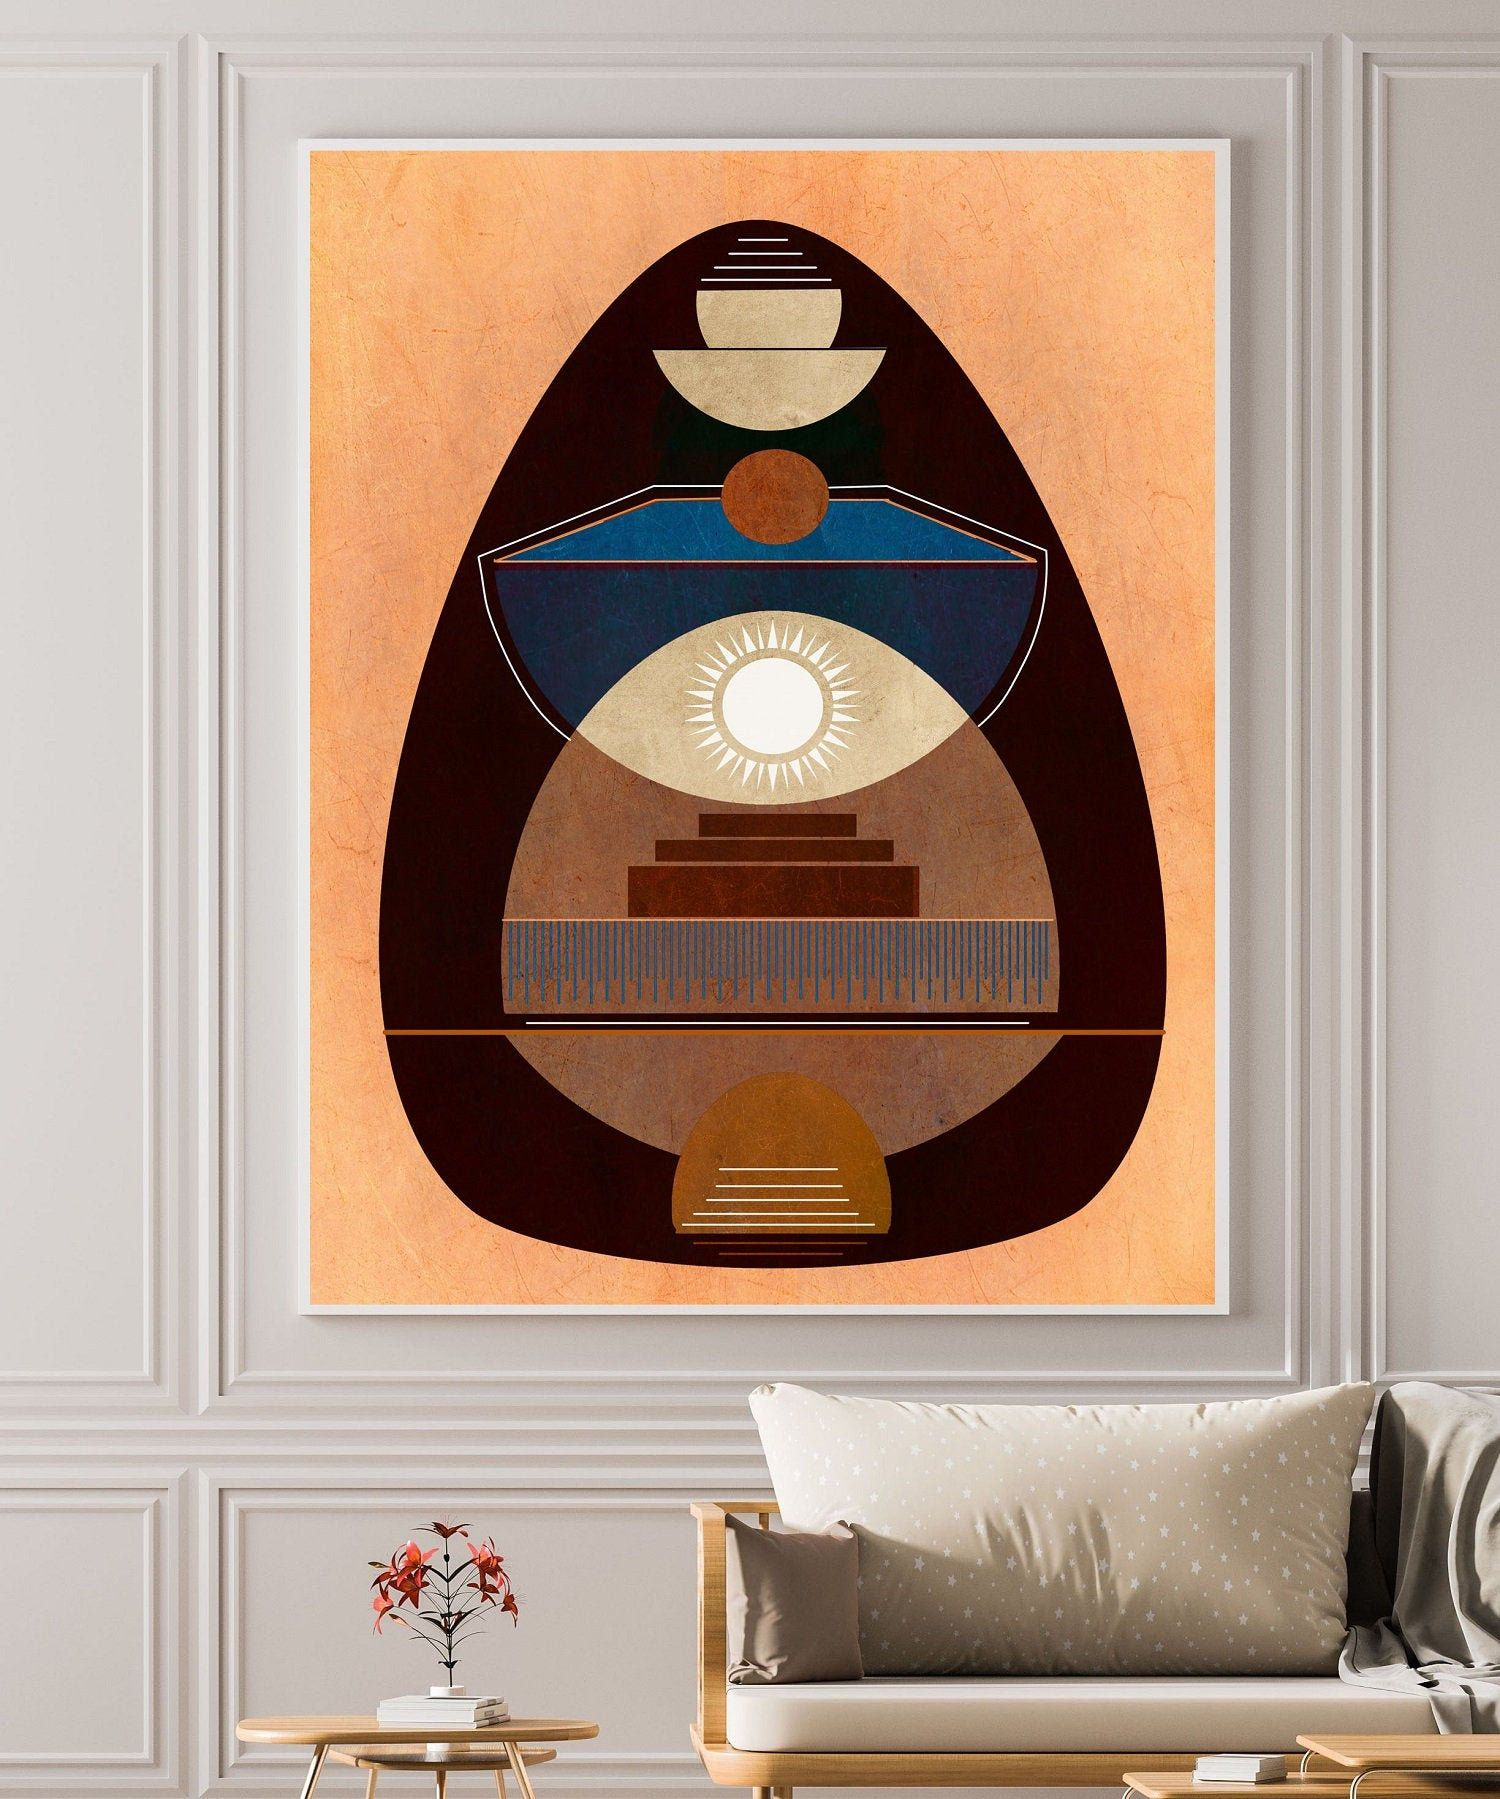 Southwestern Wall Art Instant Download Indian Art Print Large Abstract Wall Art Di Southwestern Wall Art Mid Century Wall Art Wall Art Instant Download